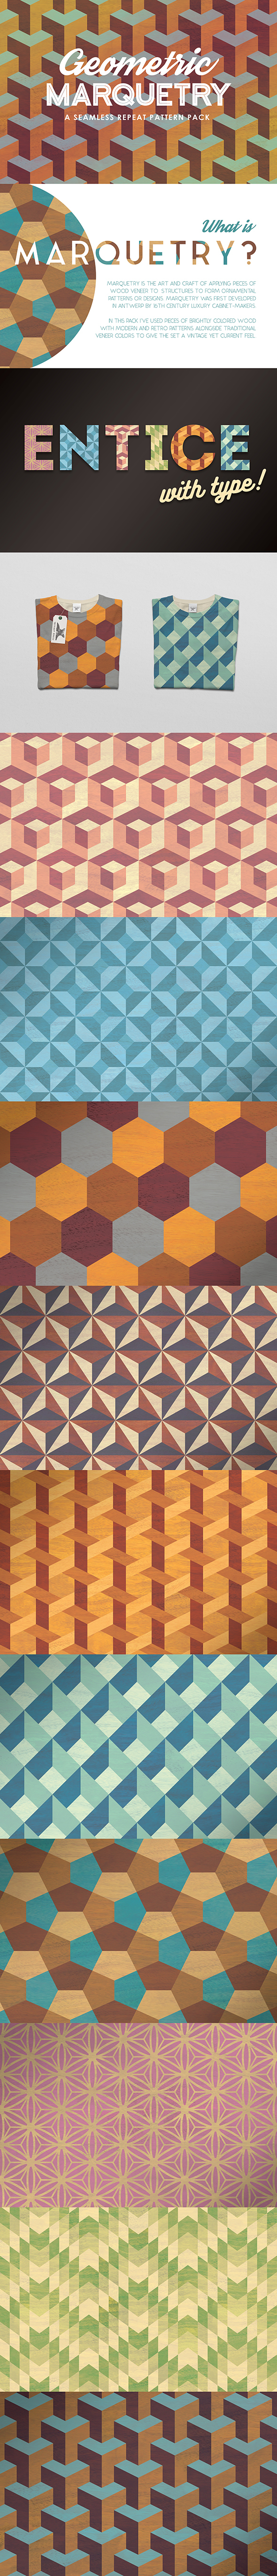 Geometric Marquetry Patterns - Textures / Fills / Patterns Photoshop